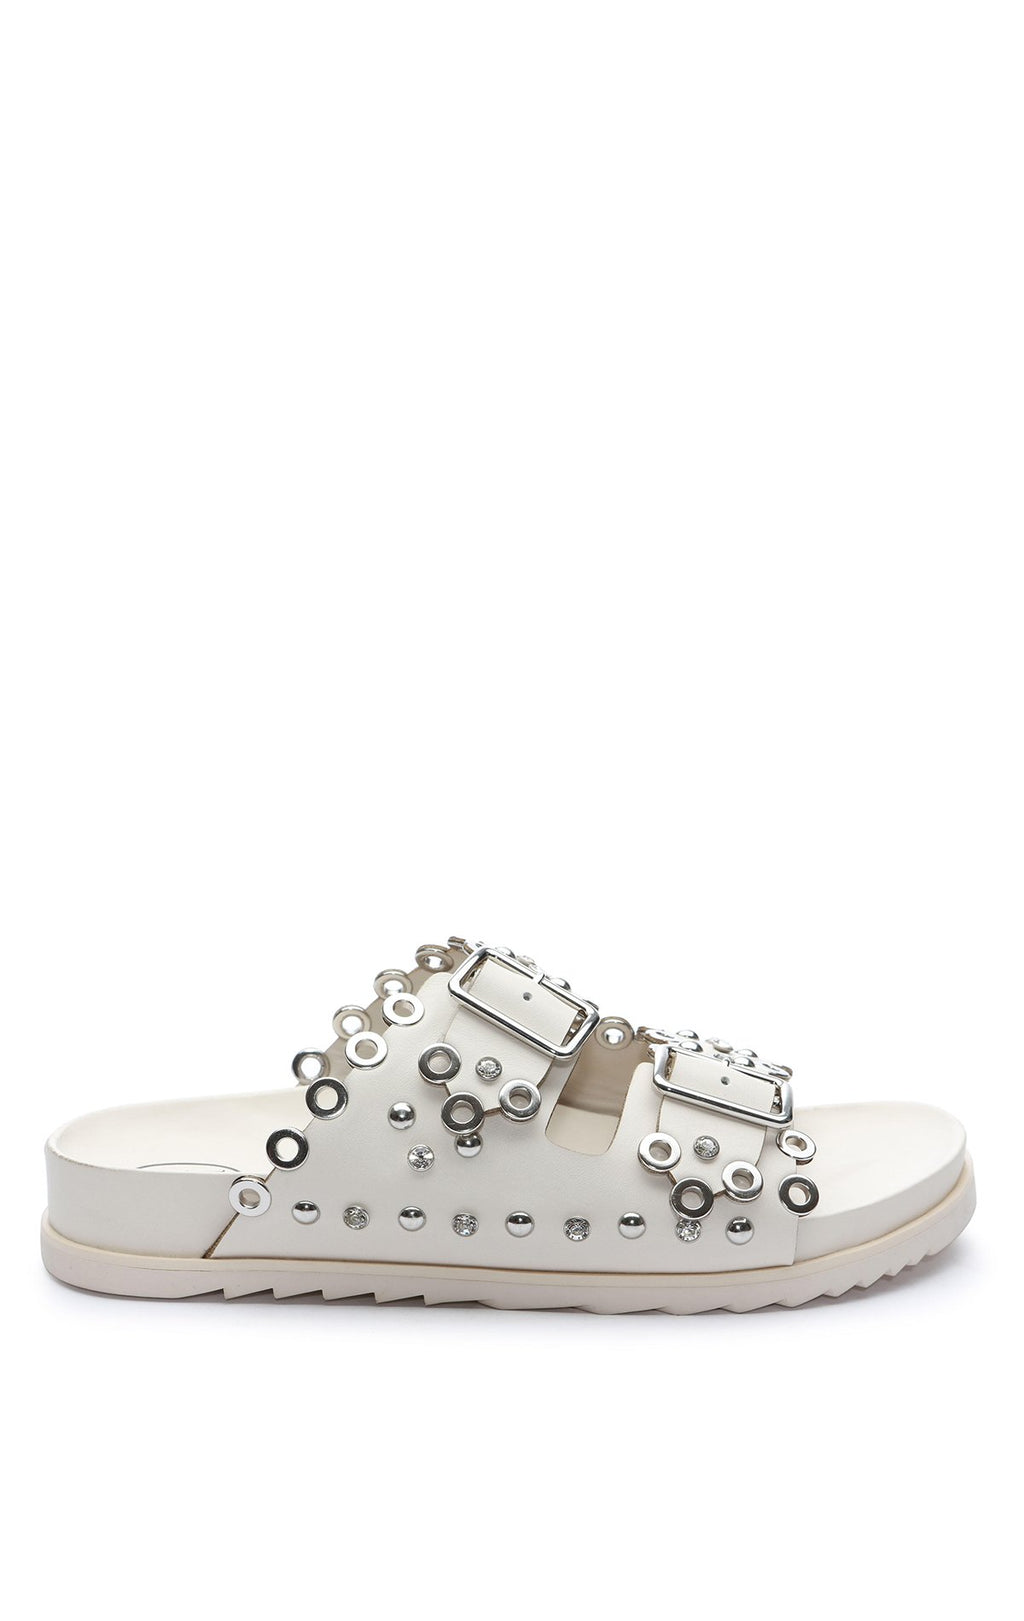 ASH UNIVERSE EMBELLISHED LEATHER SANDALS - SHOES